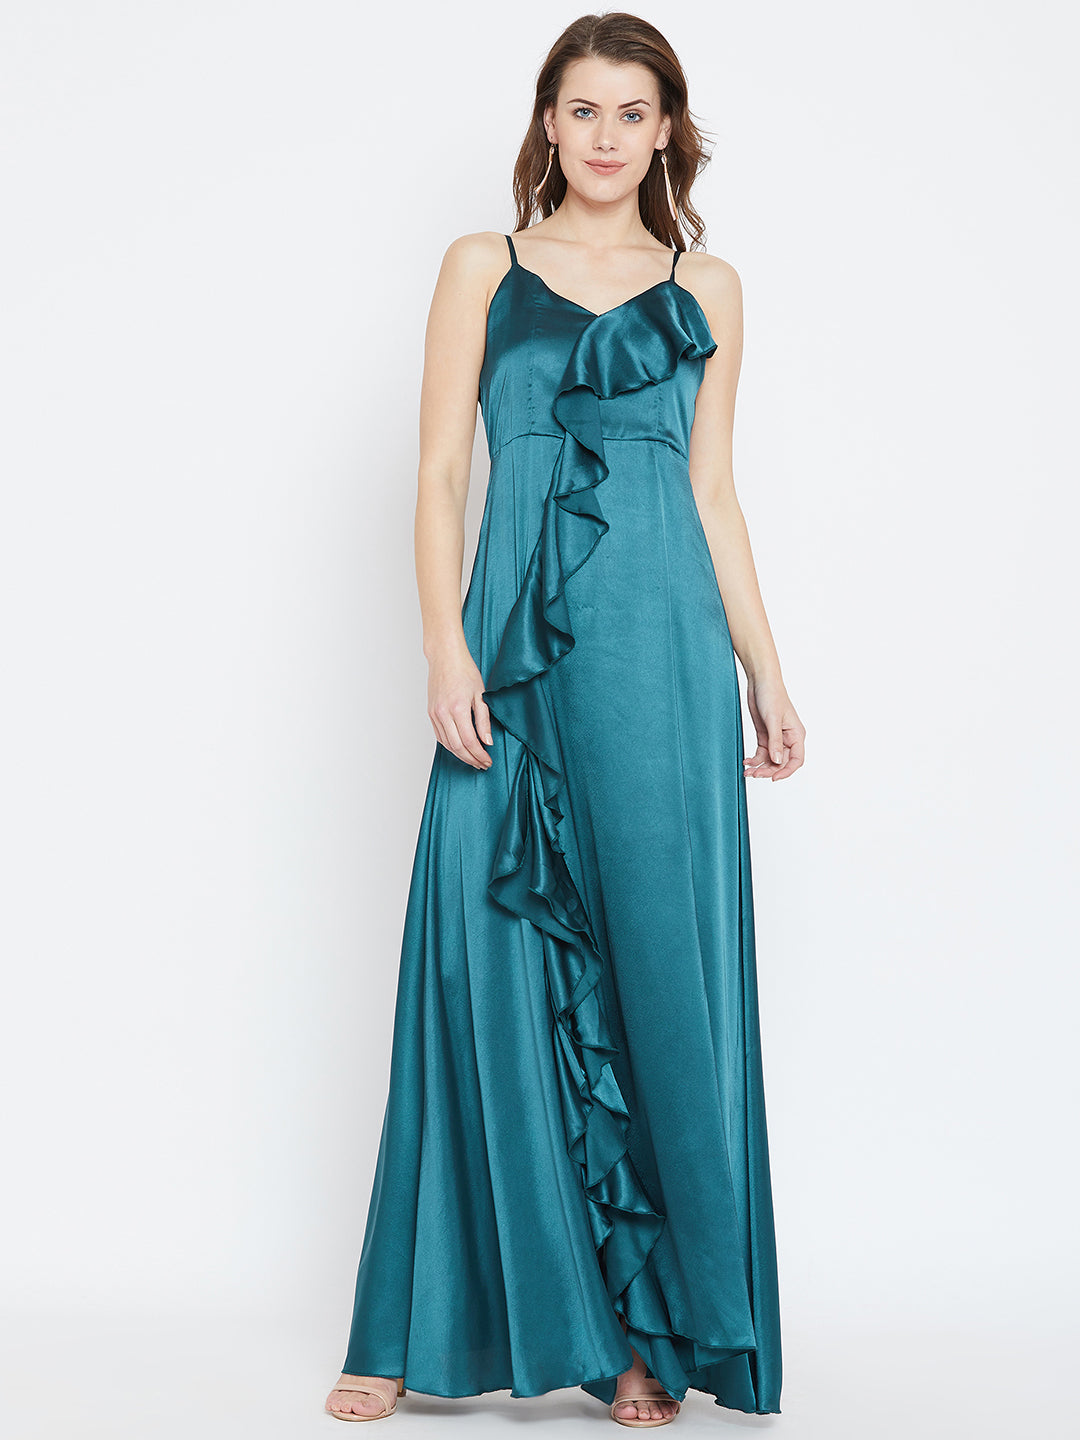 Teal Blue Solid Maxi Dress